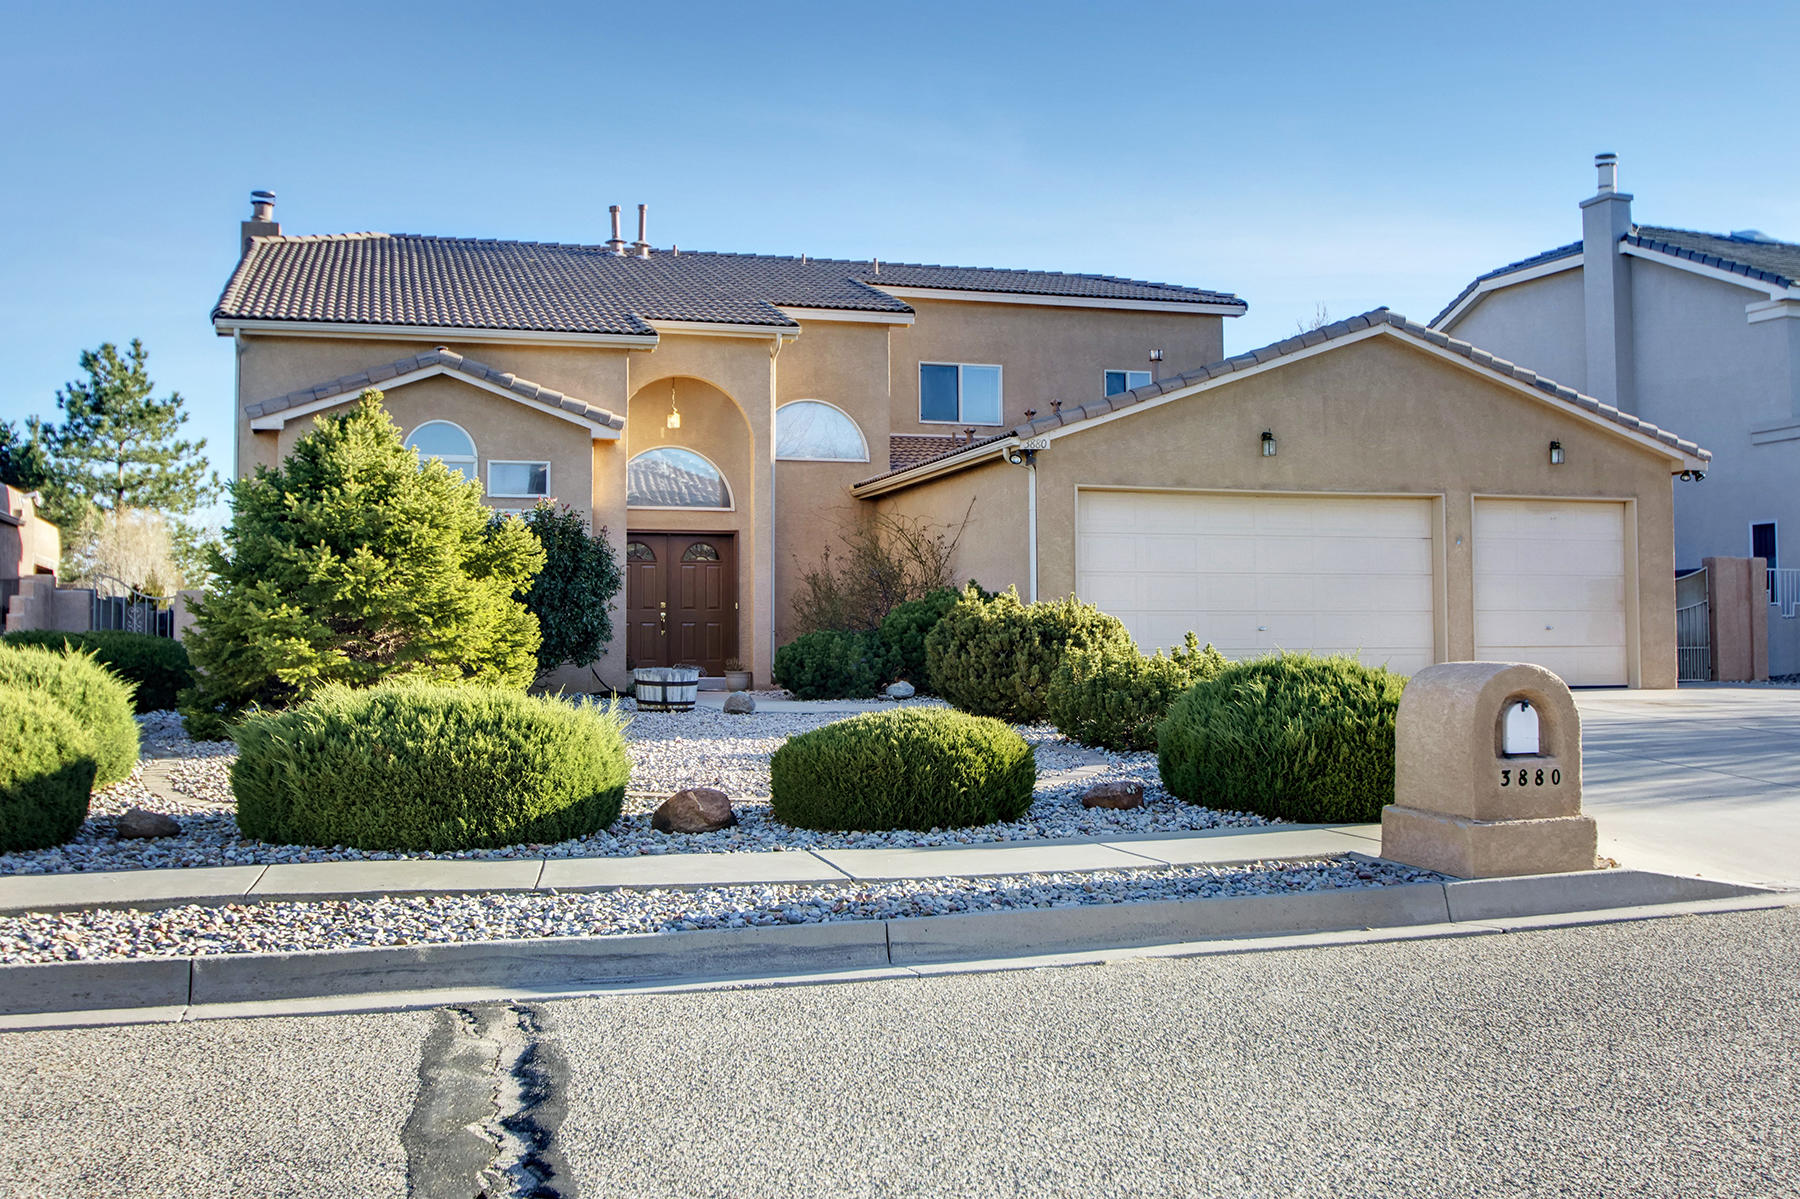 3880 SE Bay Hill Loop, Rio Rancho in Sandoval County, NM 87124 Home for Sale